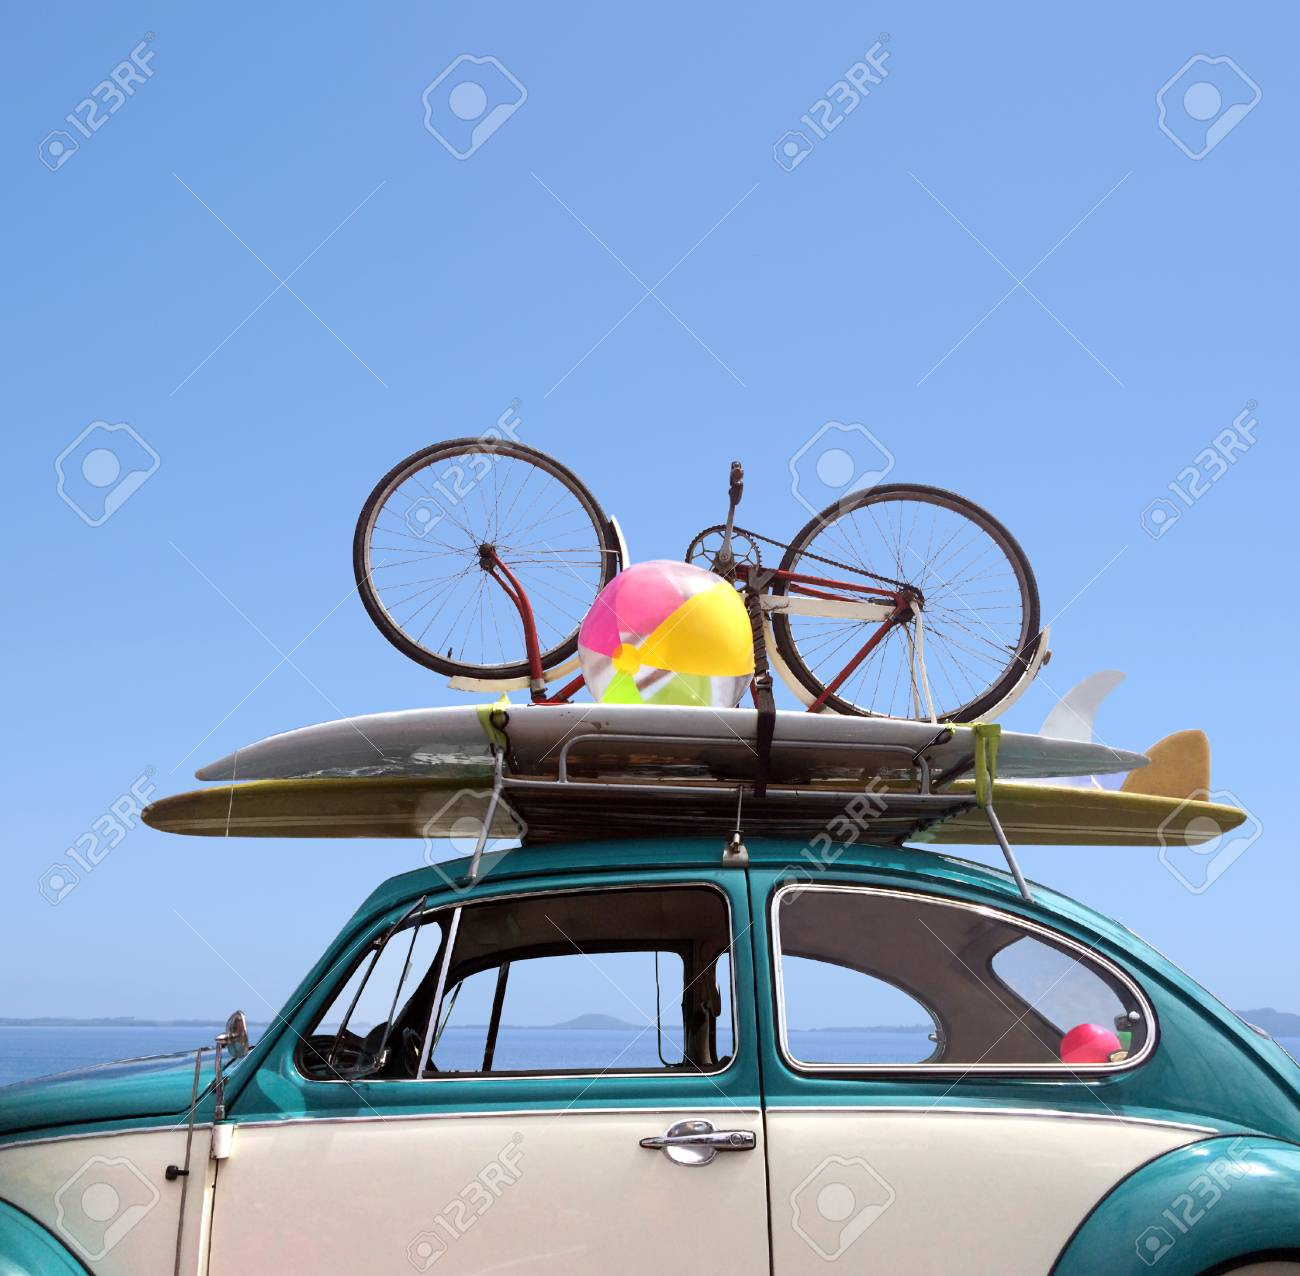 Summer holiday road trip vacation, Travel concept with copy space - 47253127